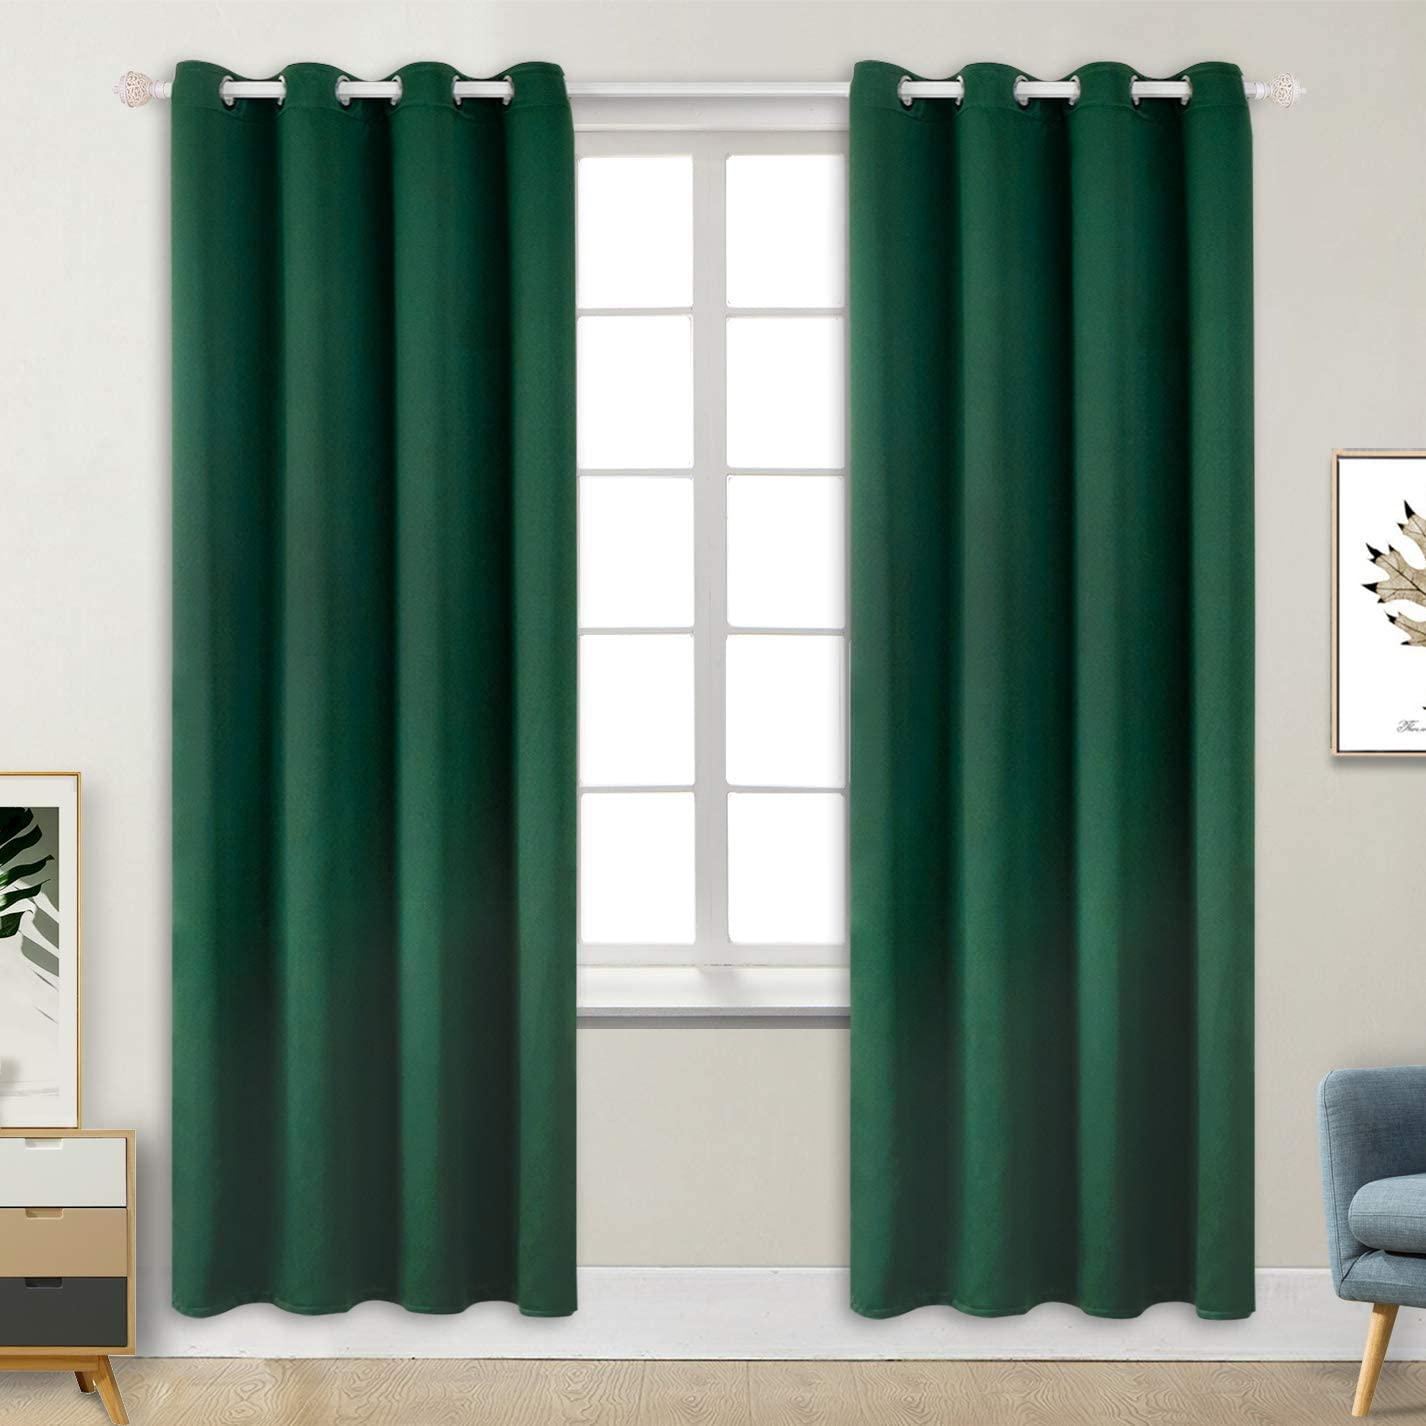 BGment Blackout Curtains - Grommet Thermal Insulated Room Darkening Bedroom and Living Room Curtains, Set of 2 Decorative Curtain Panels (52 x 84 Inch, Emerald Green)